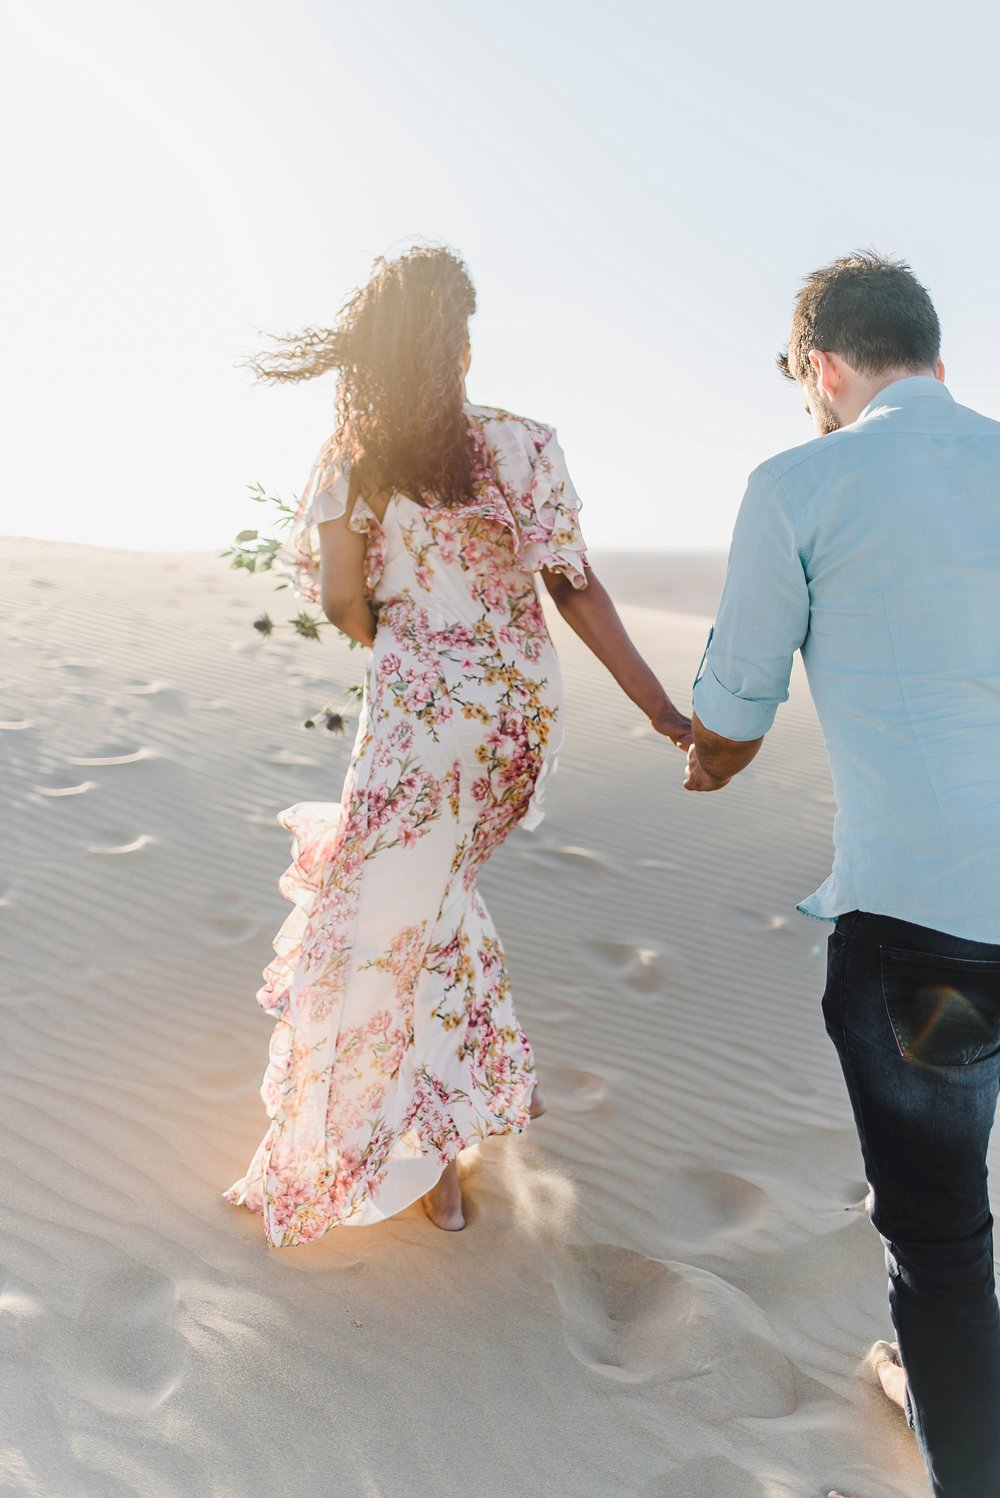 Singing Sand Dunes Desert Love Shoot | Ali and Batoul Photography_0029.jpg